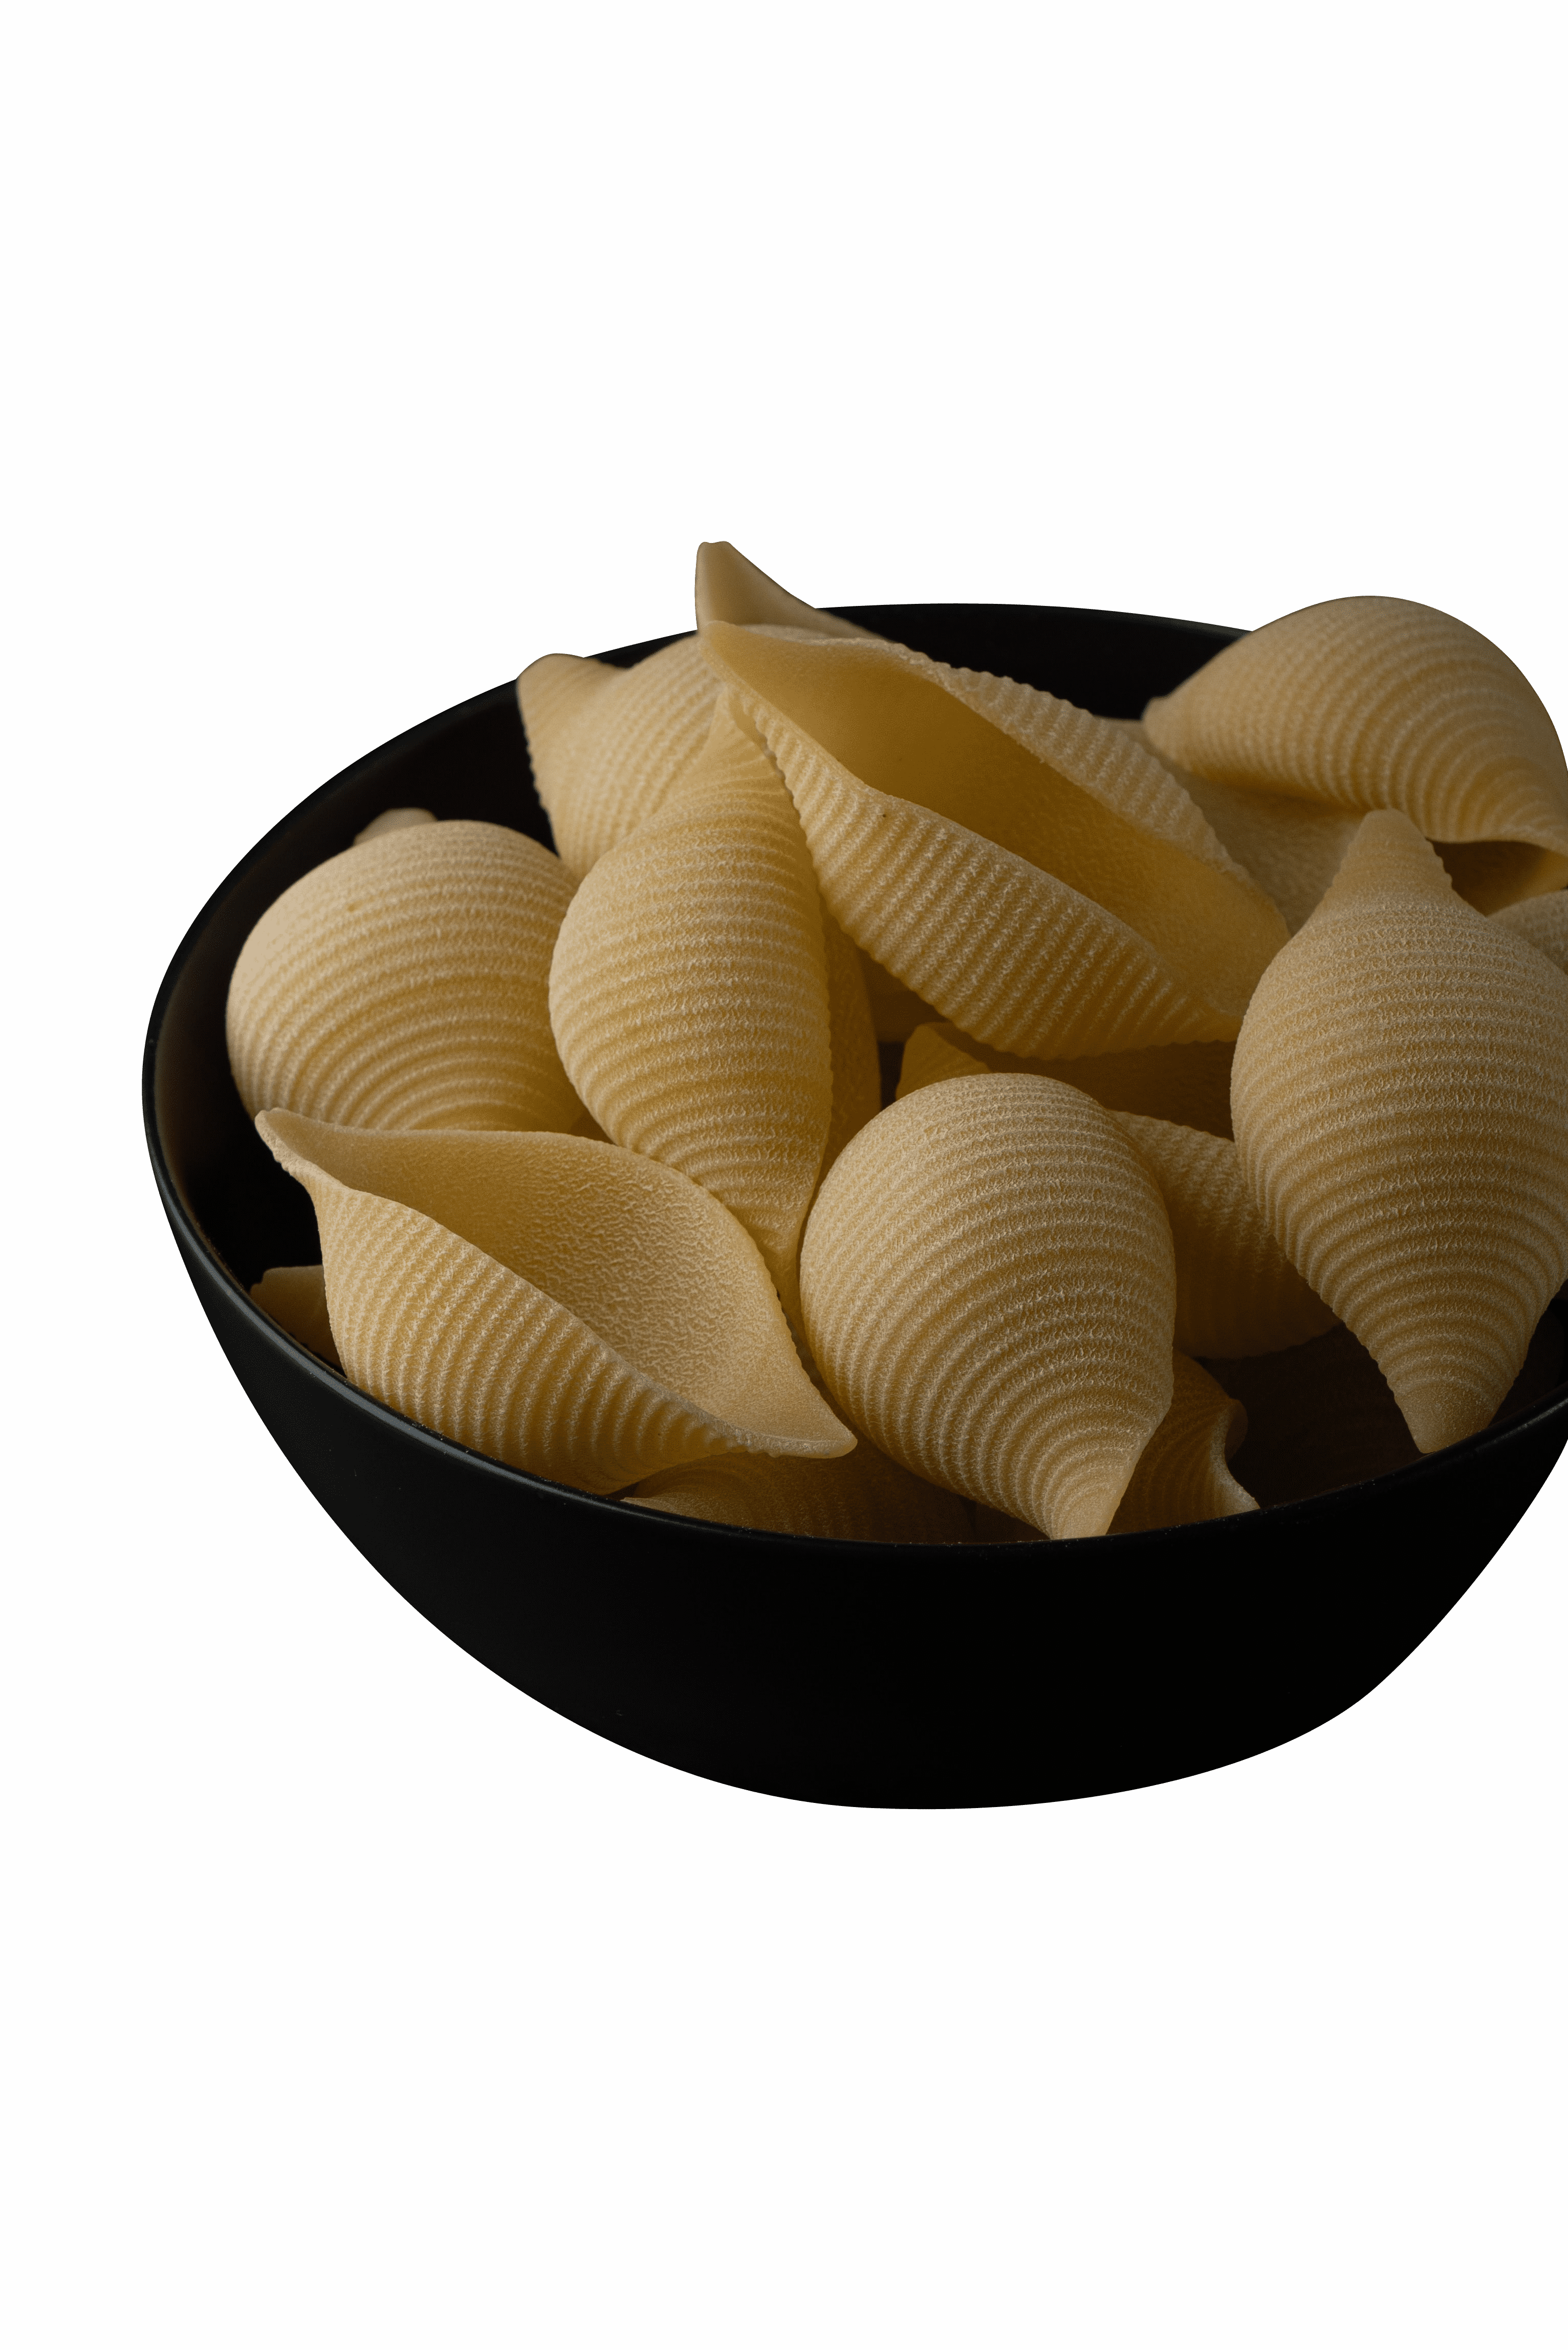 Sea shells in black bowl transparent background.png